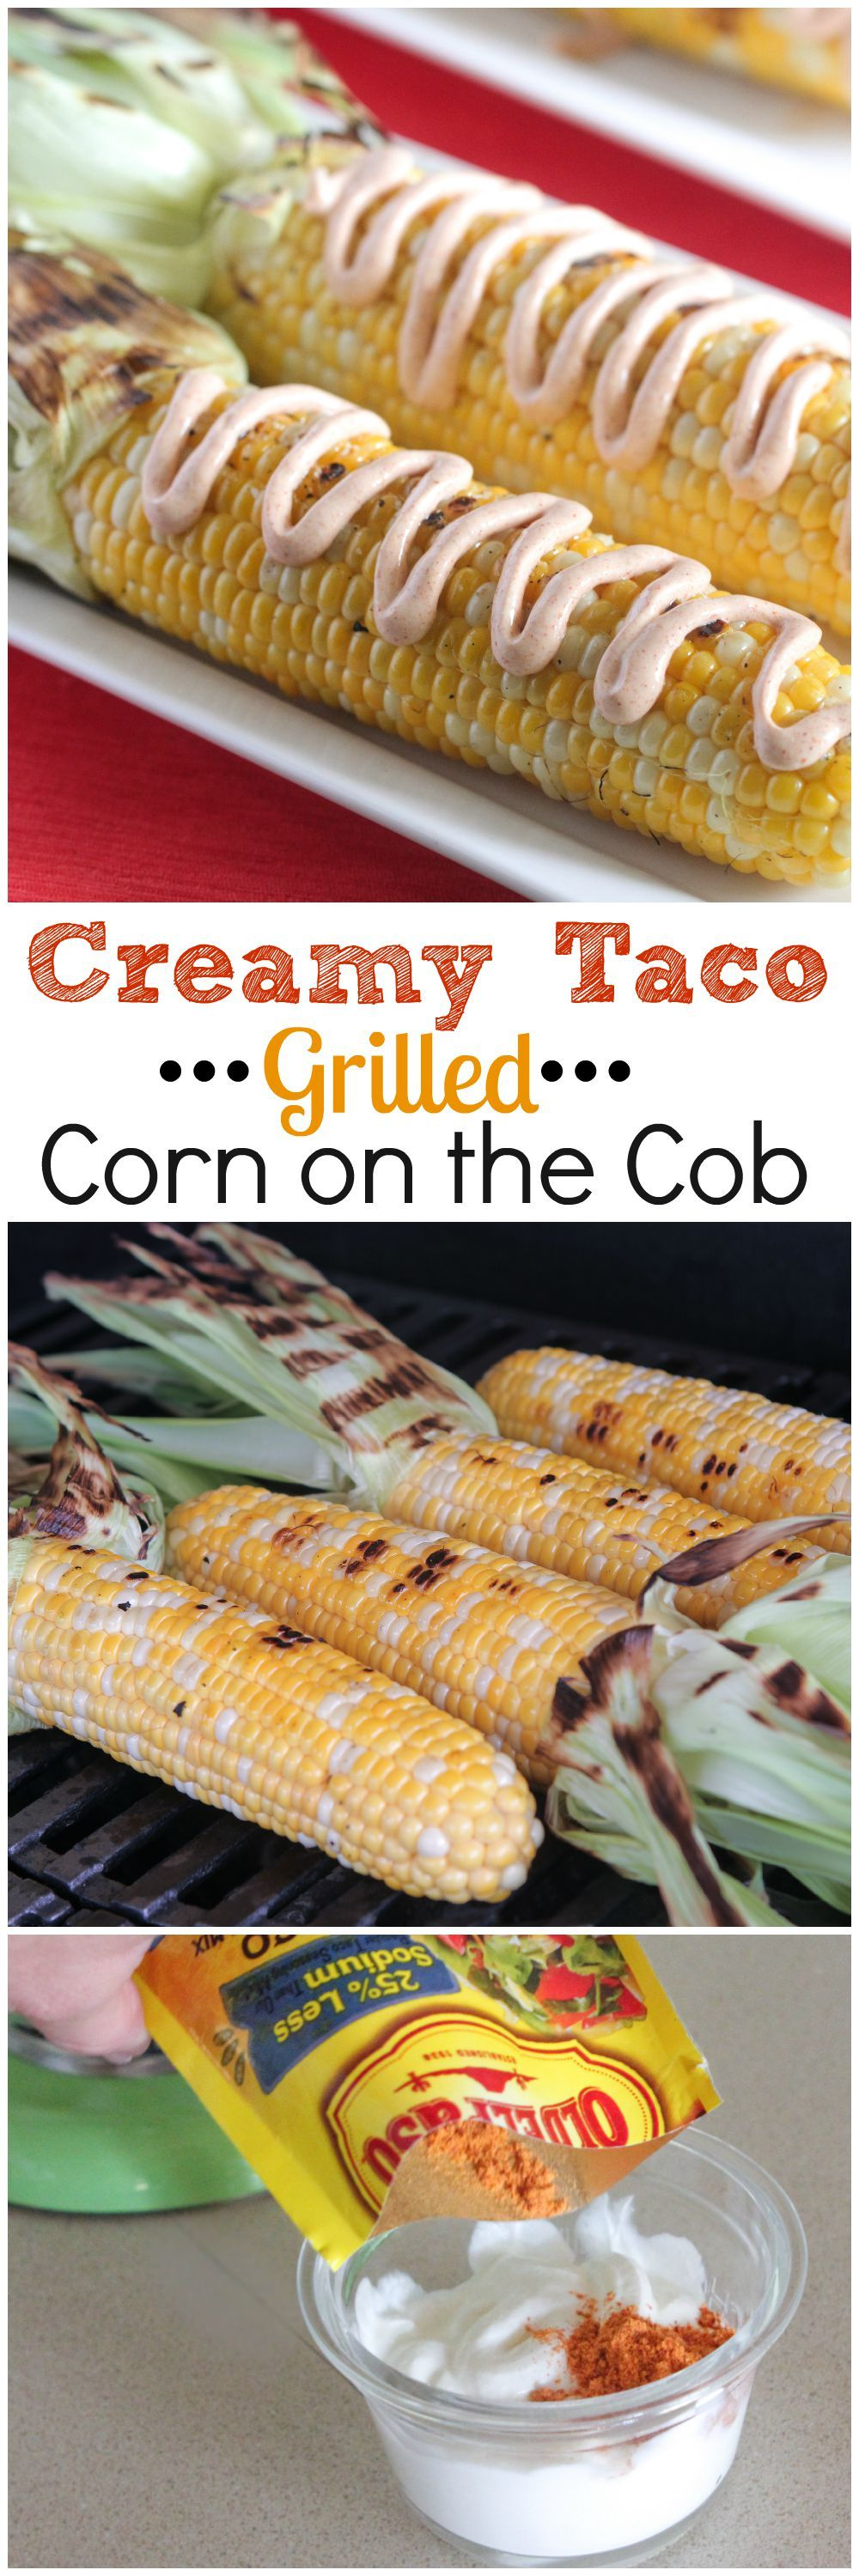 Photo of Taco Grilled Corn on the Cob